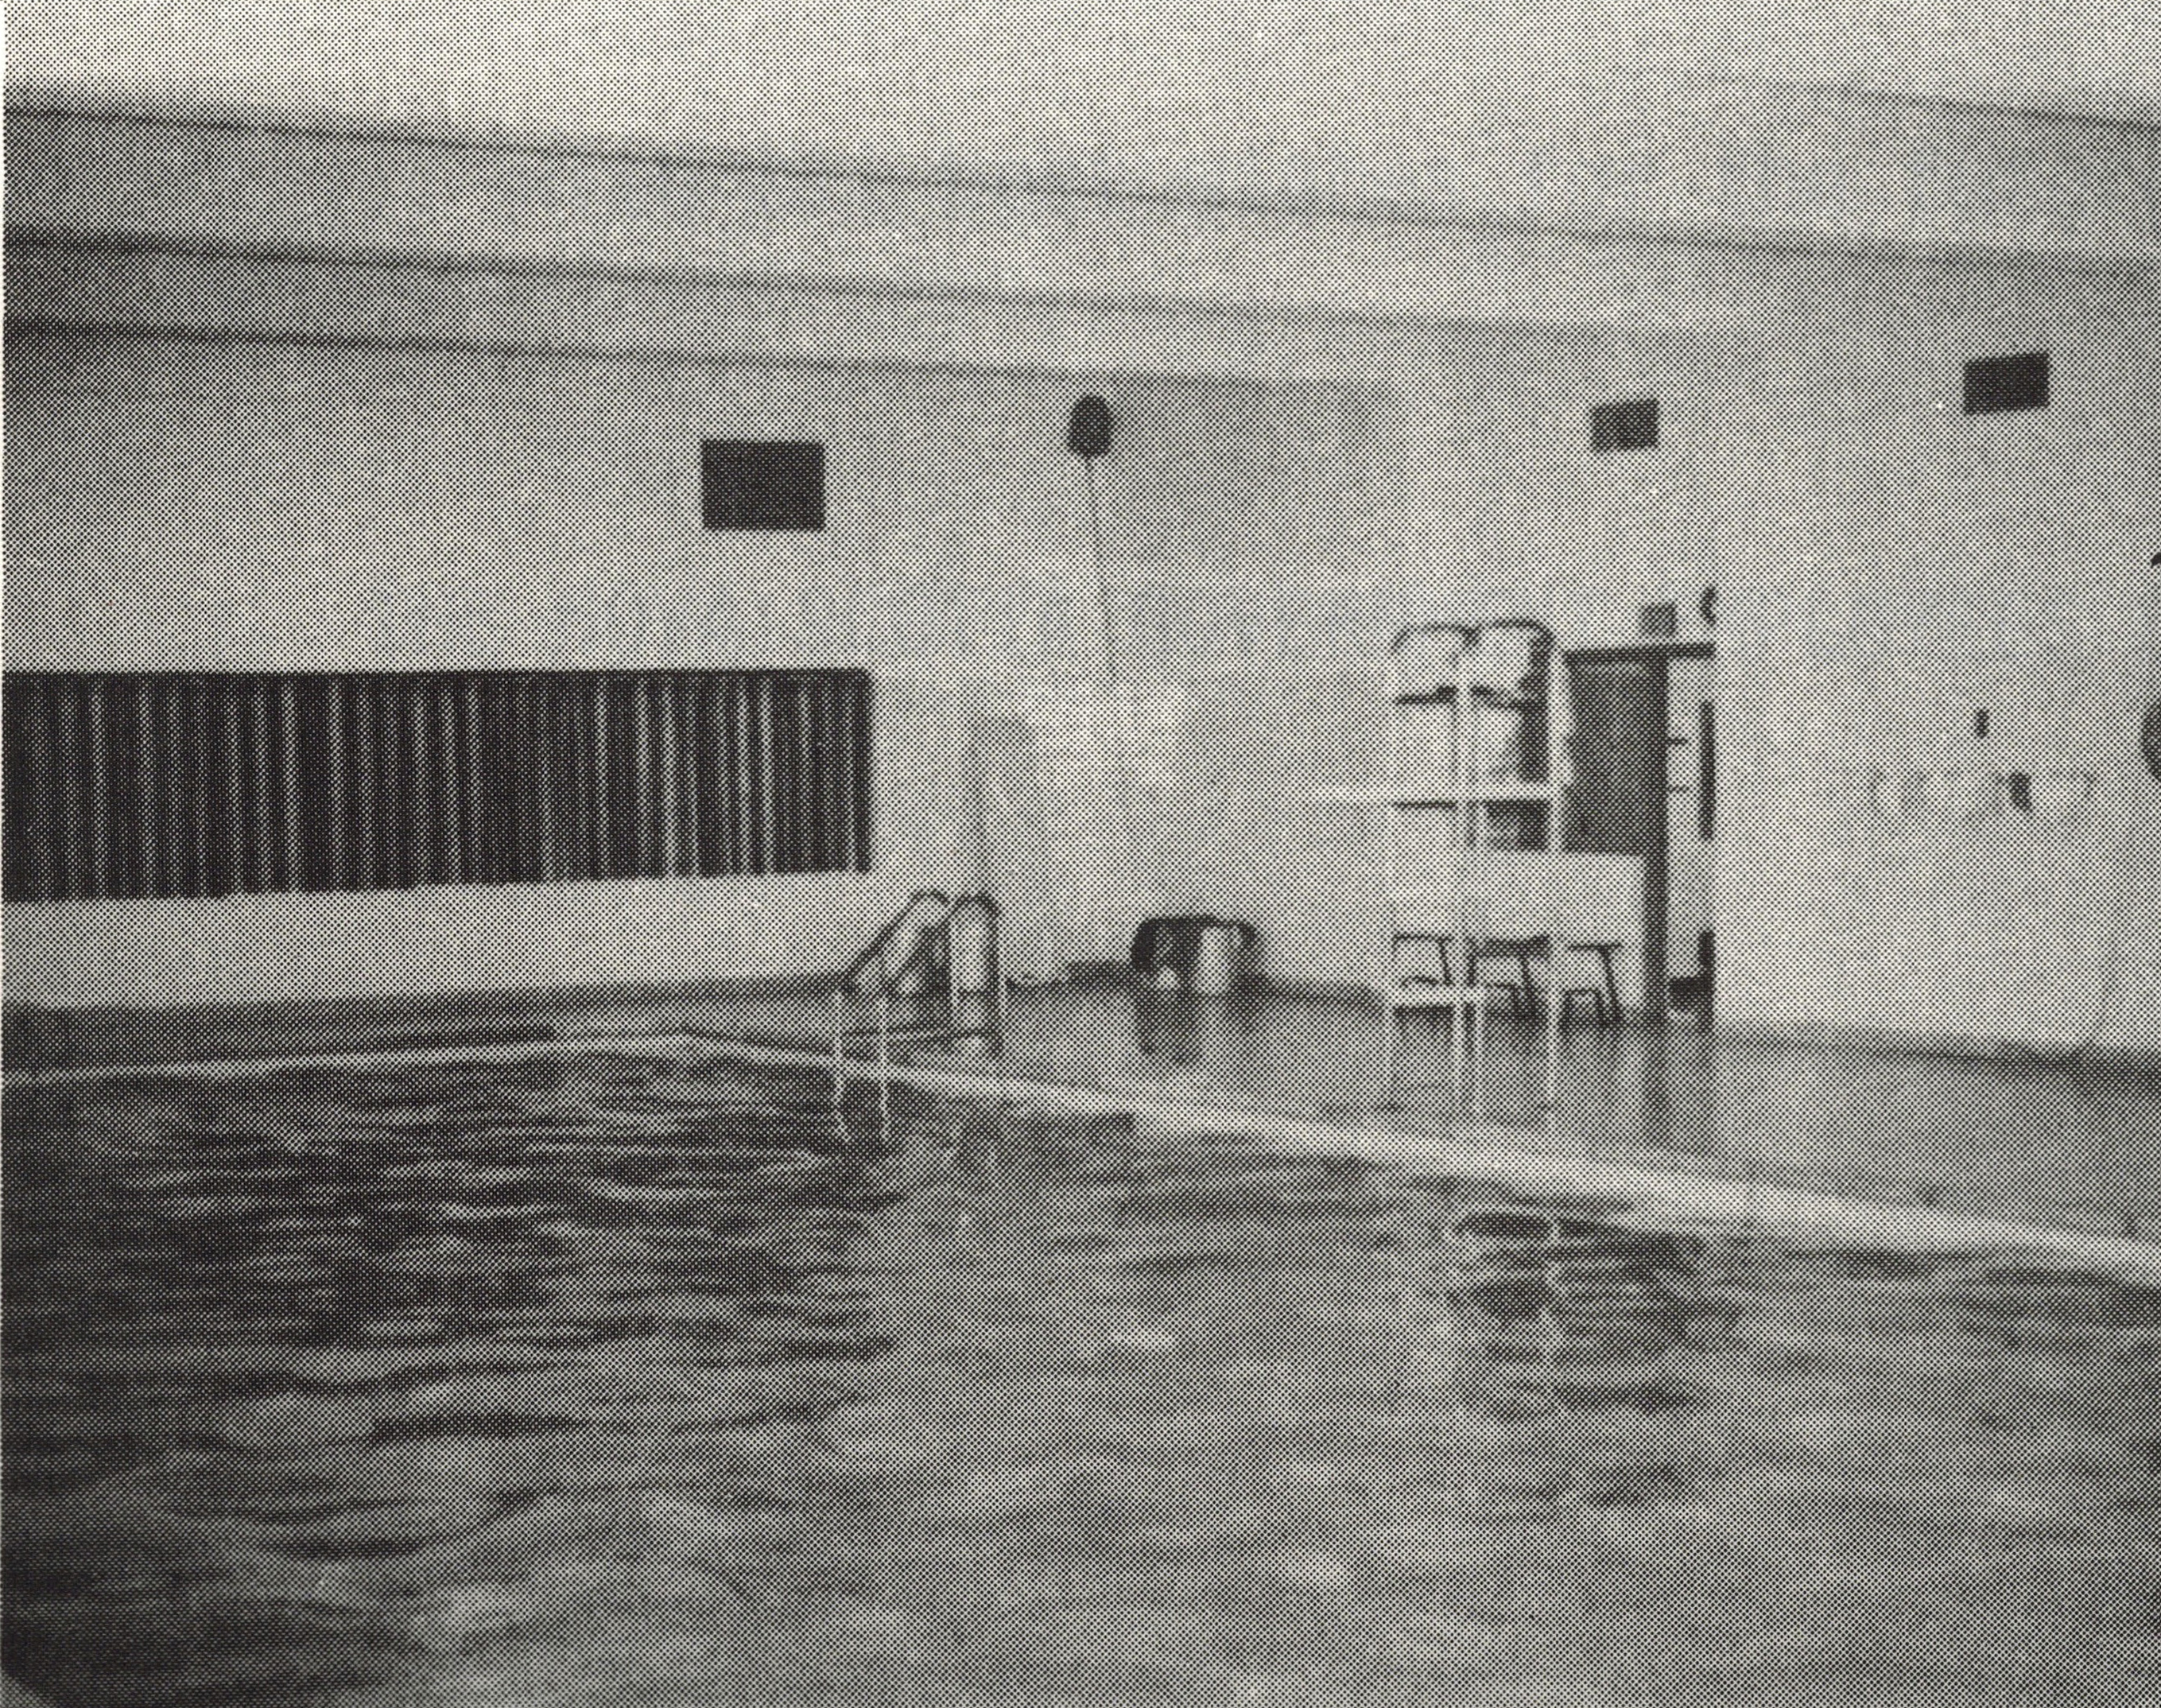 black and white photo of empty swimming pool